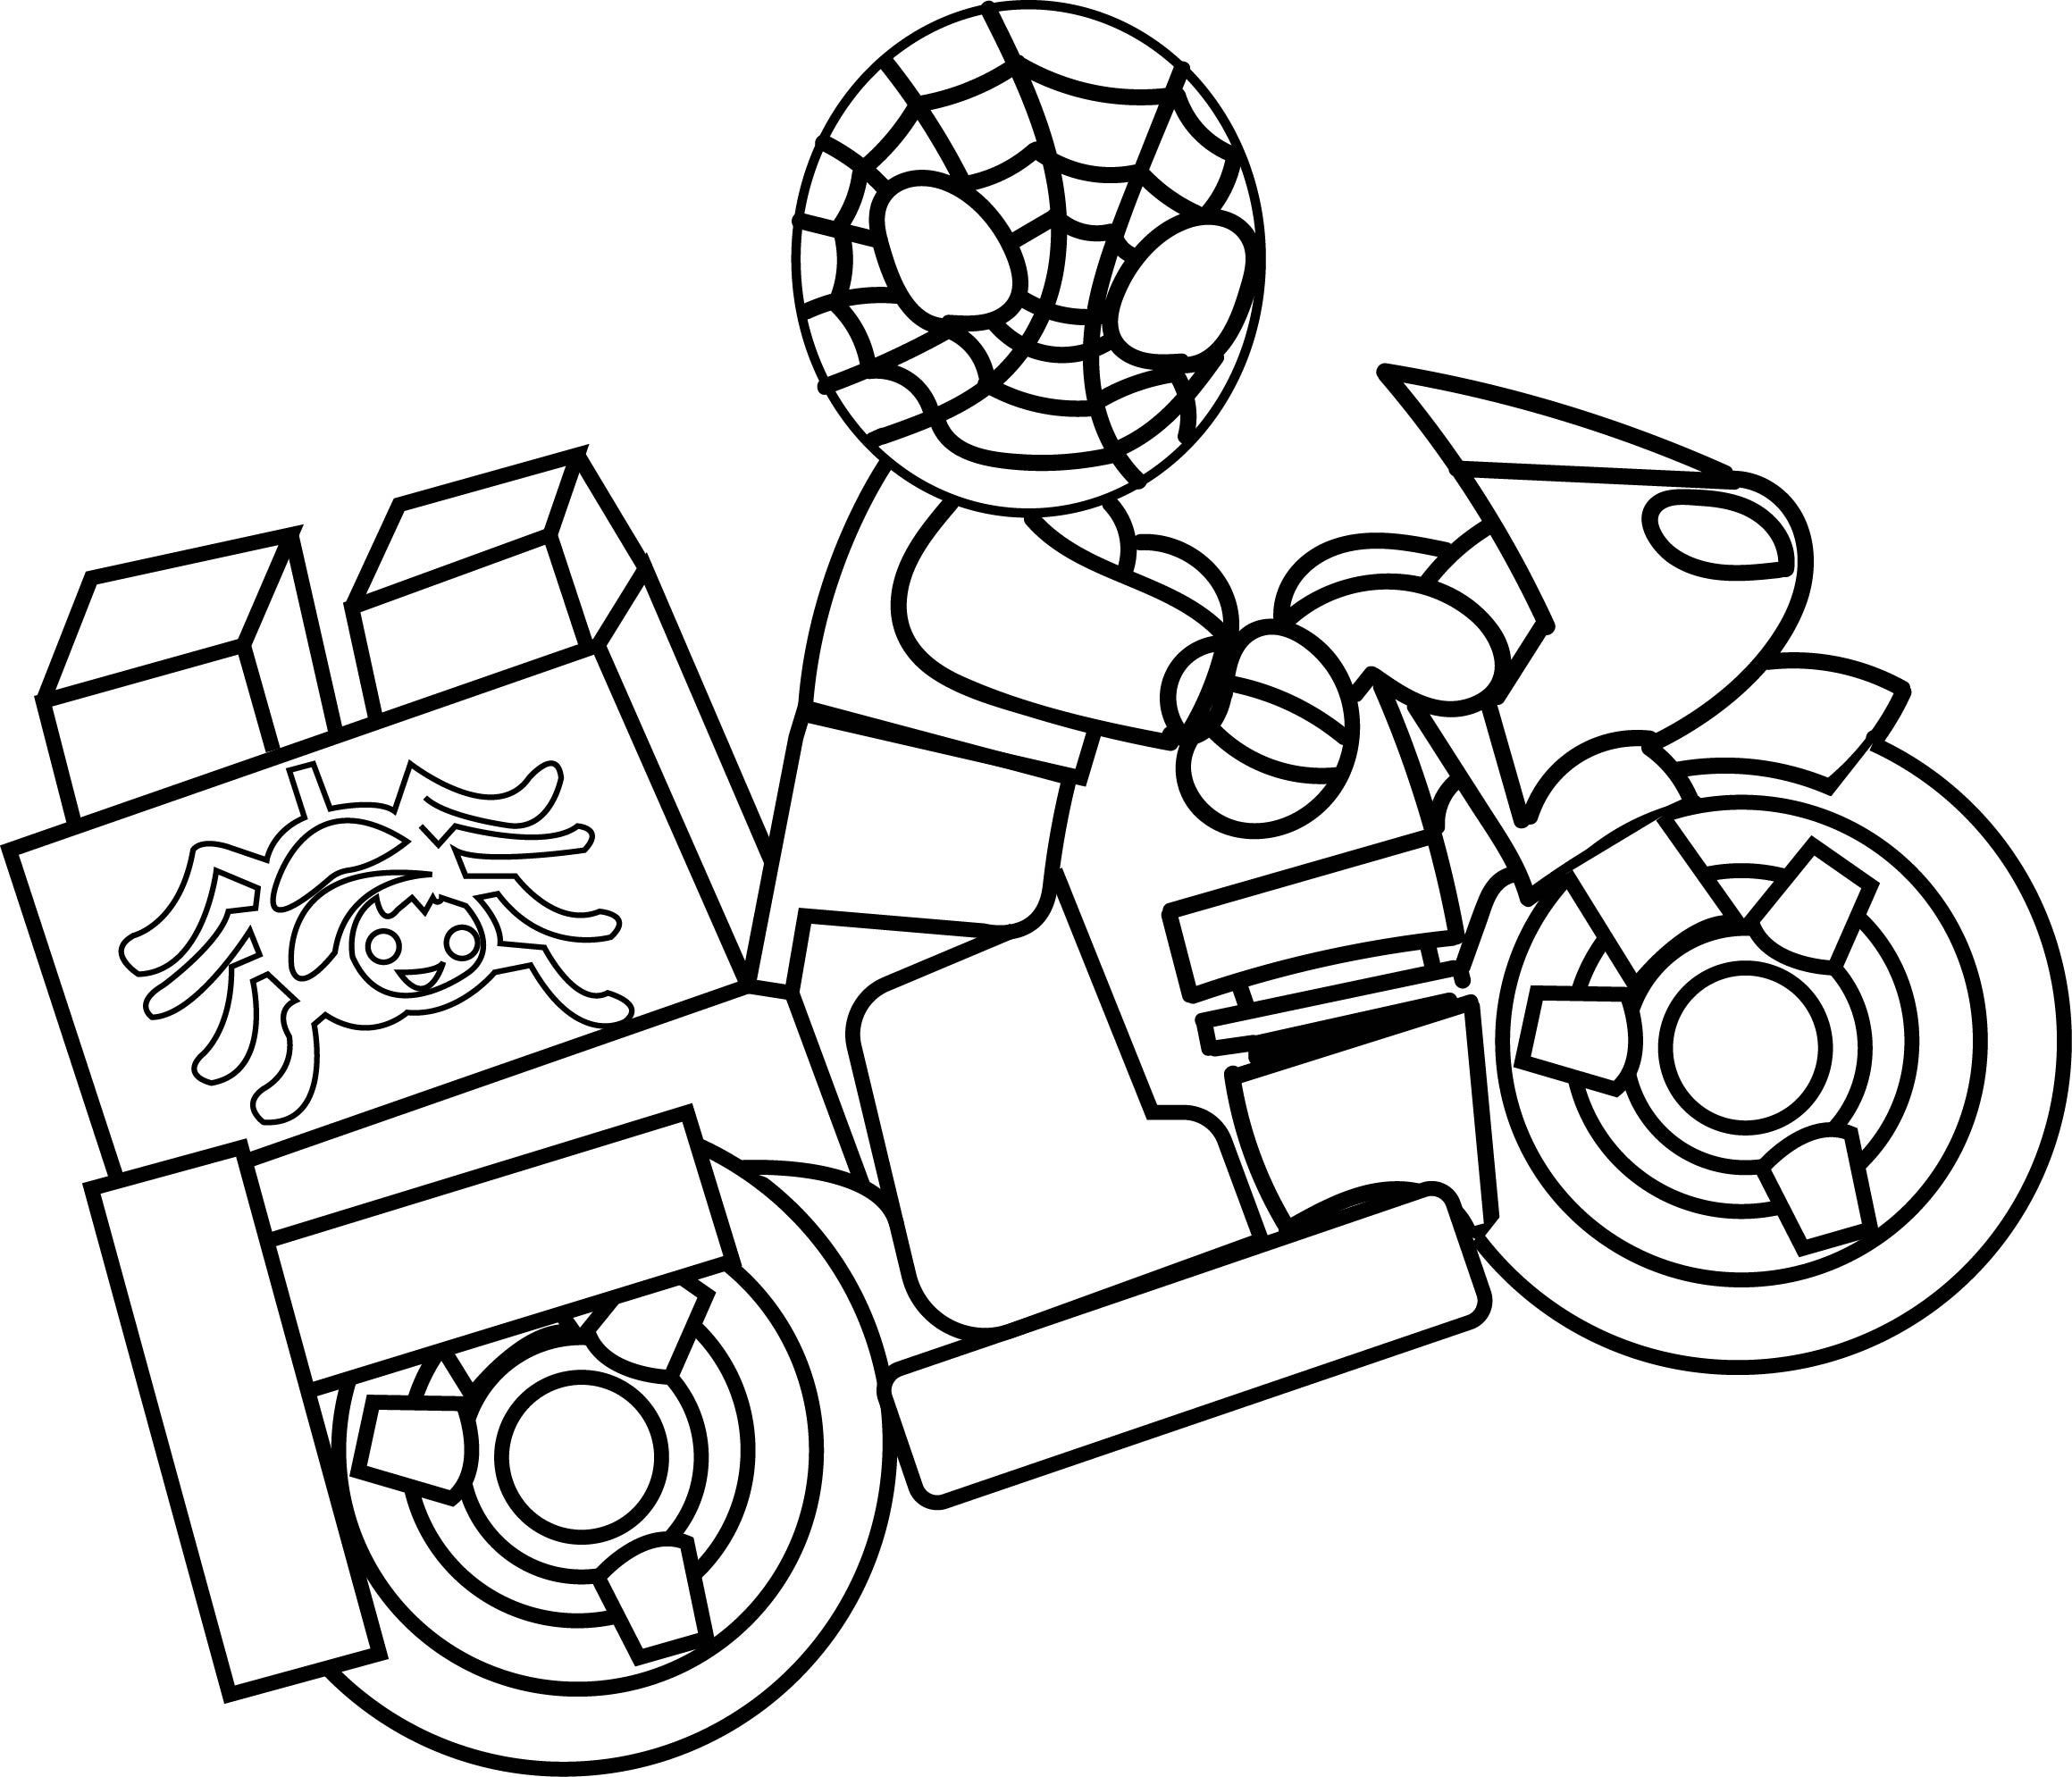 2319x1989 Lego Spiderman And Batman Coloring Book Pages Kids